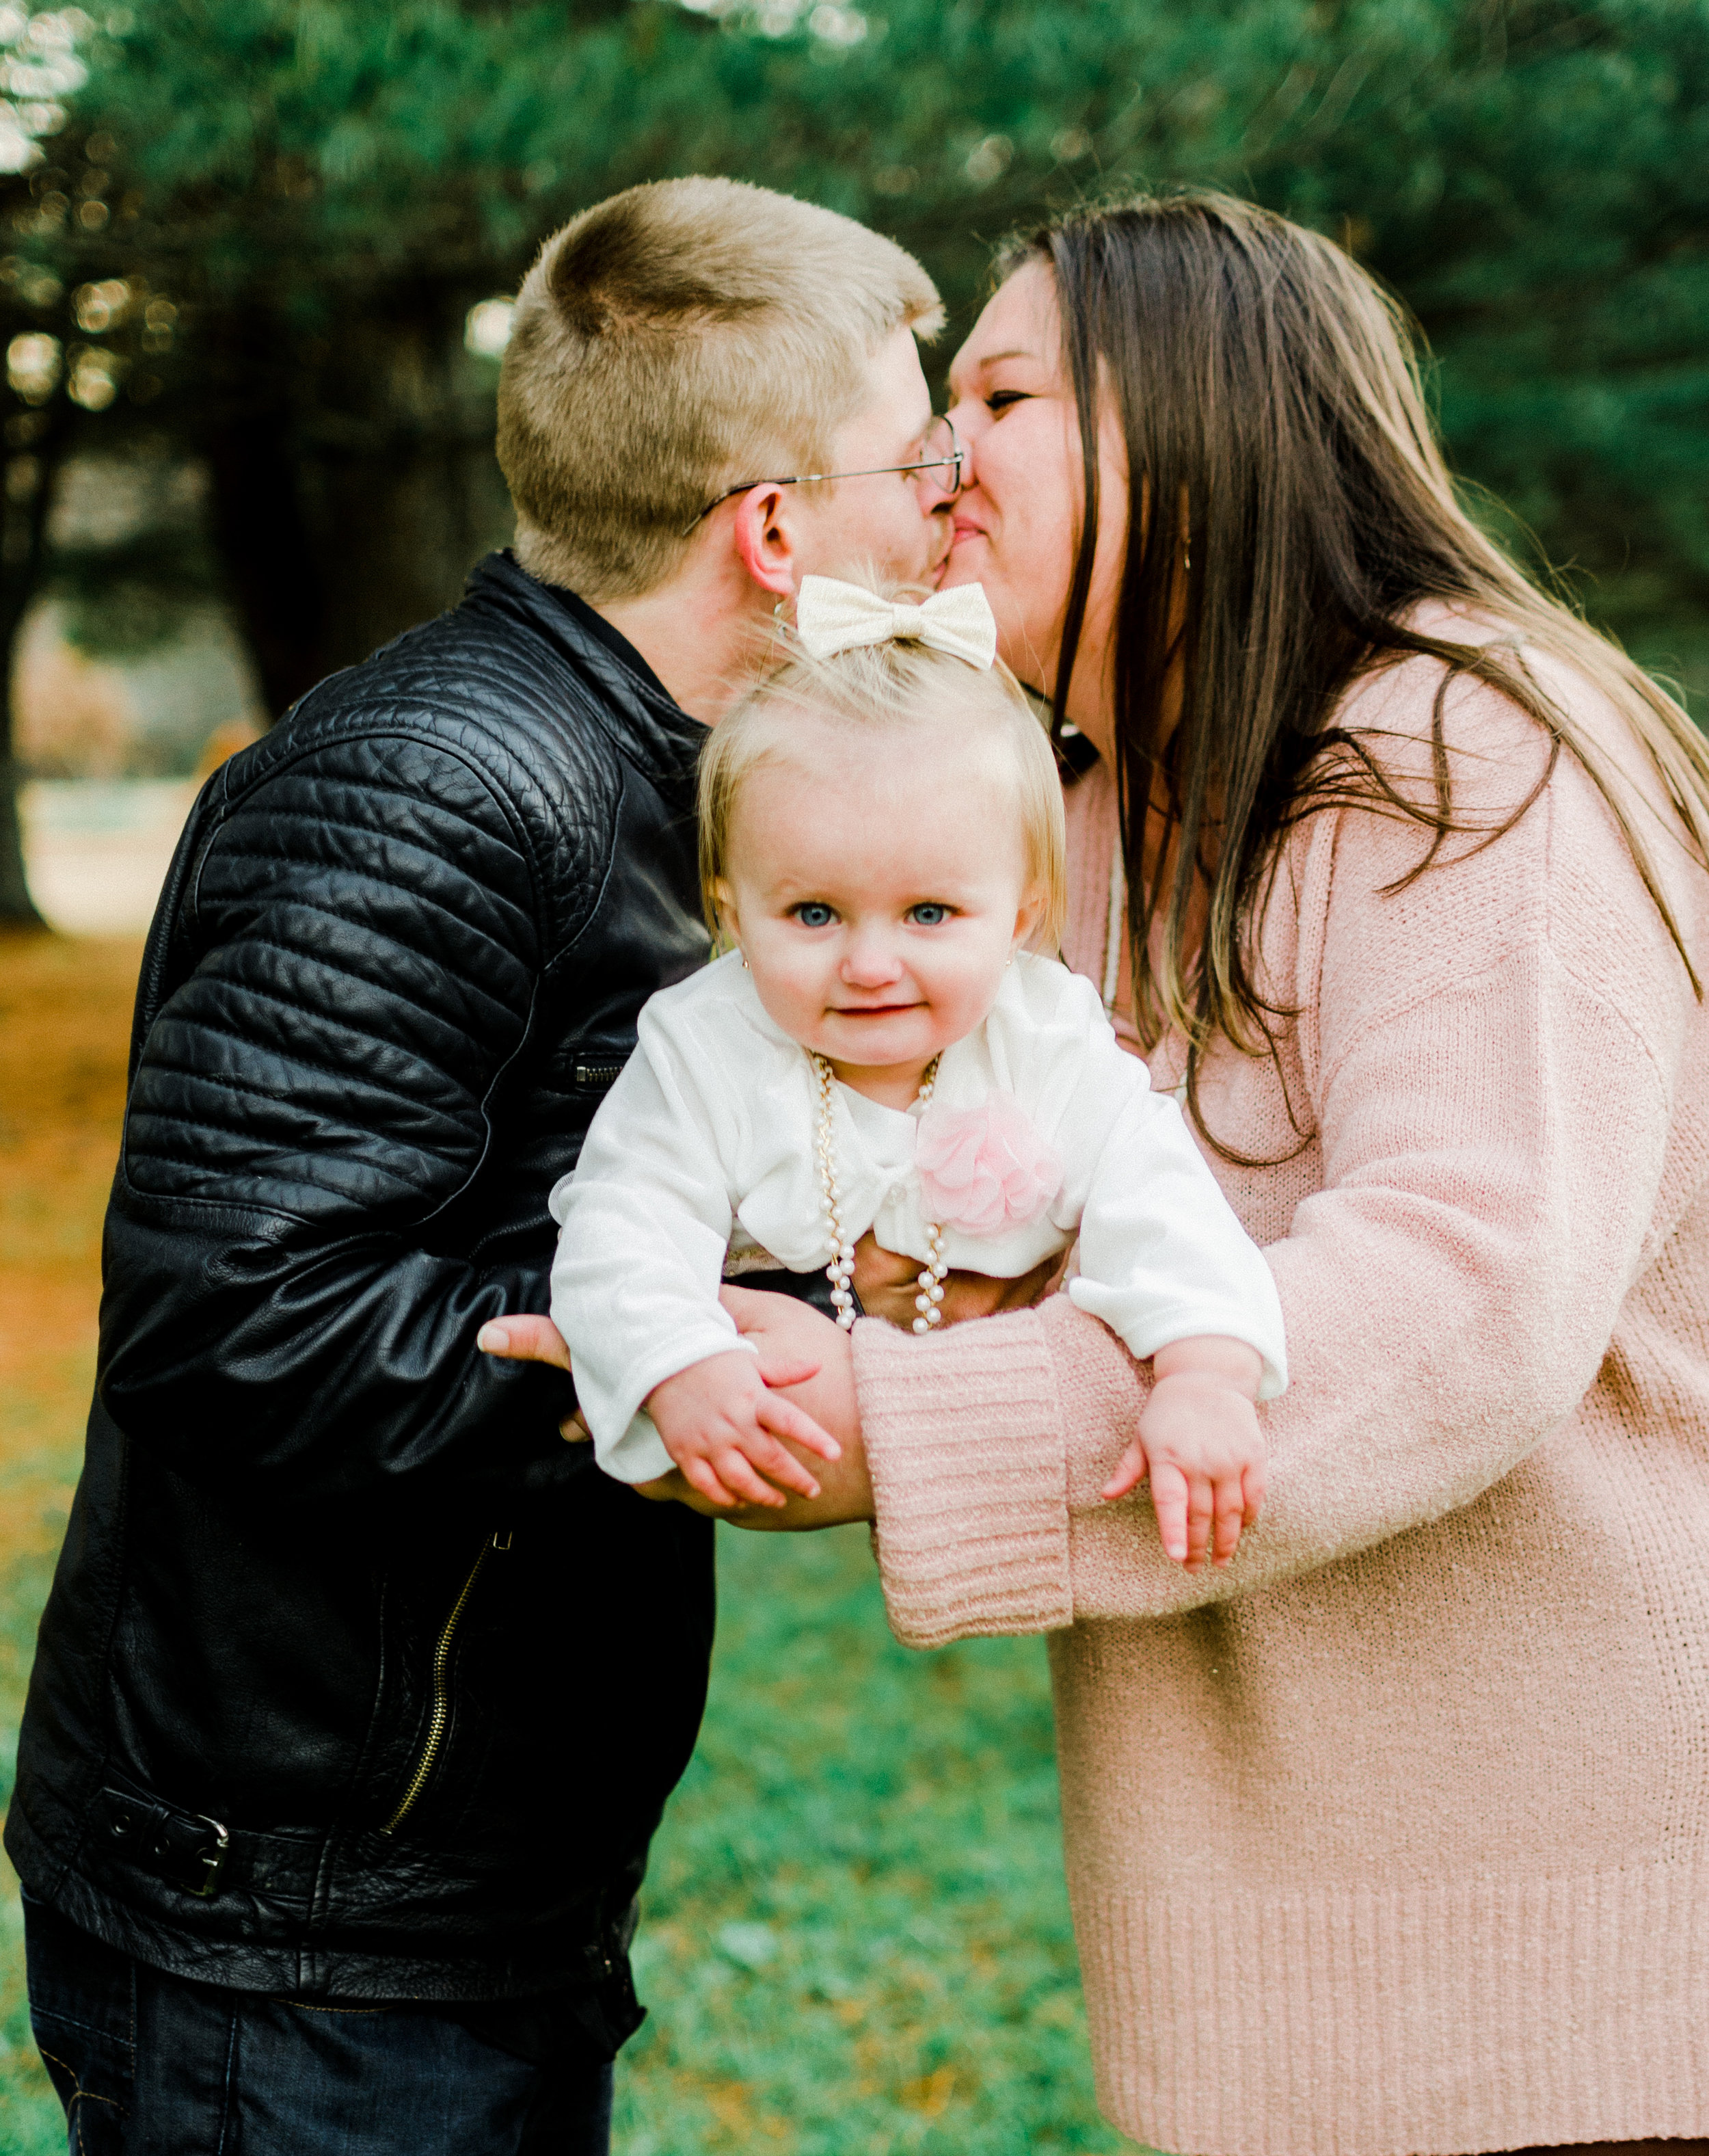 Hingenitz Family Session -26.jpg